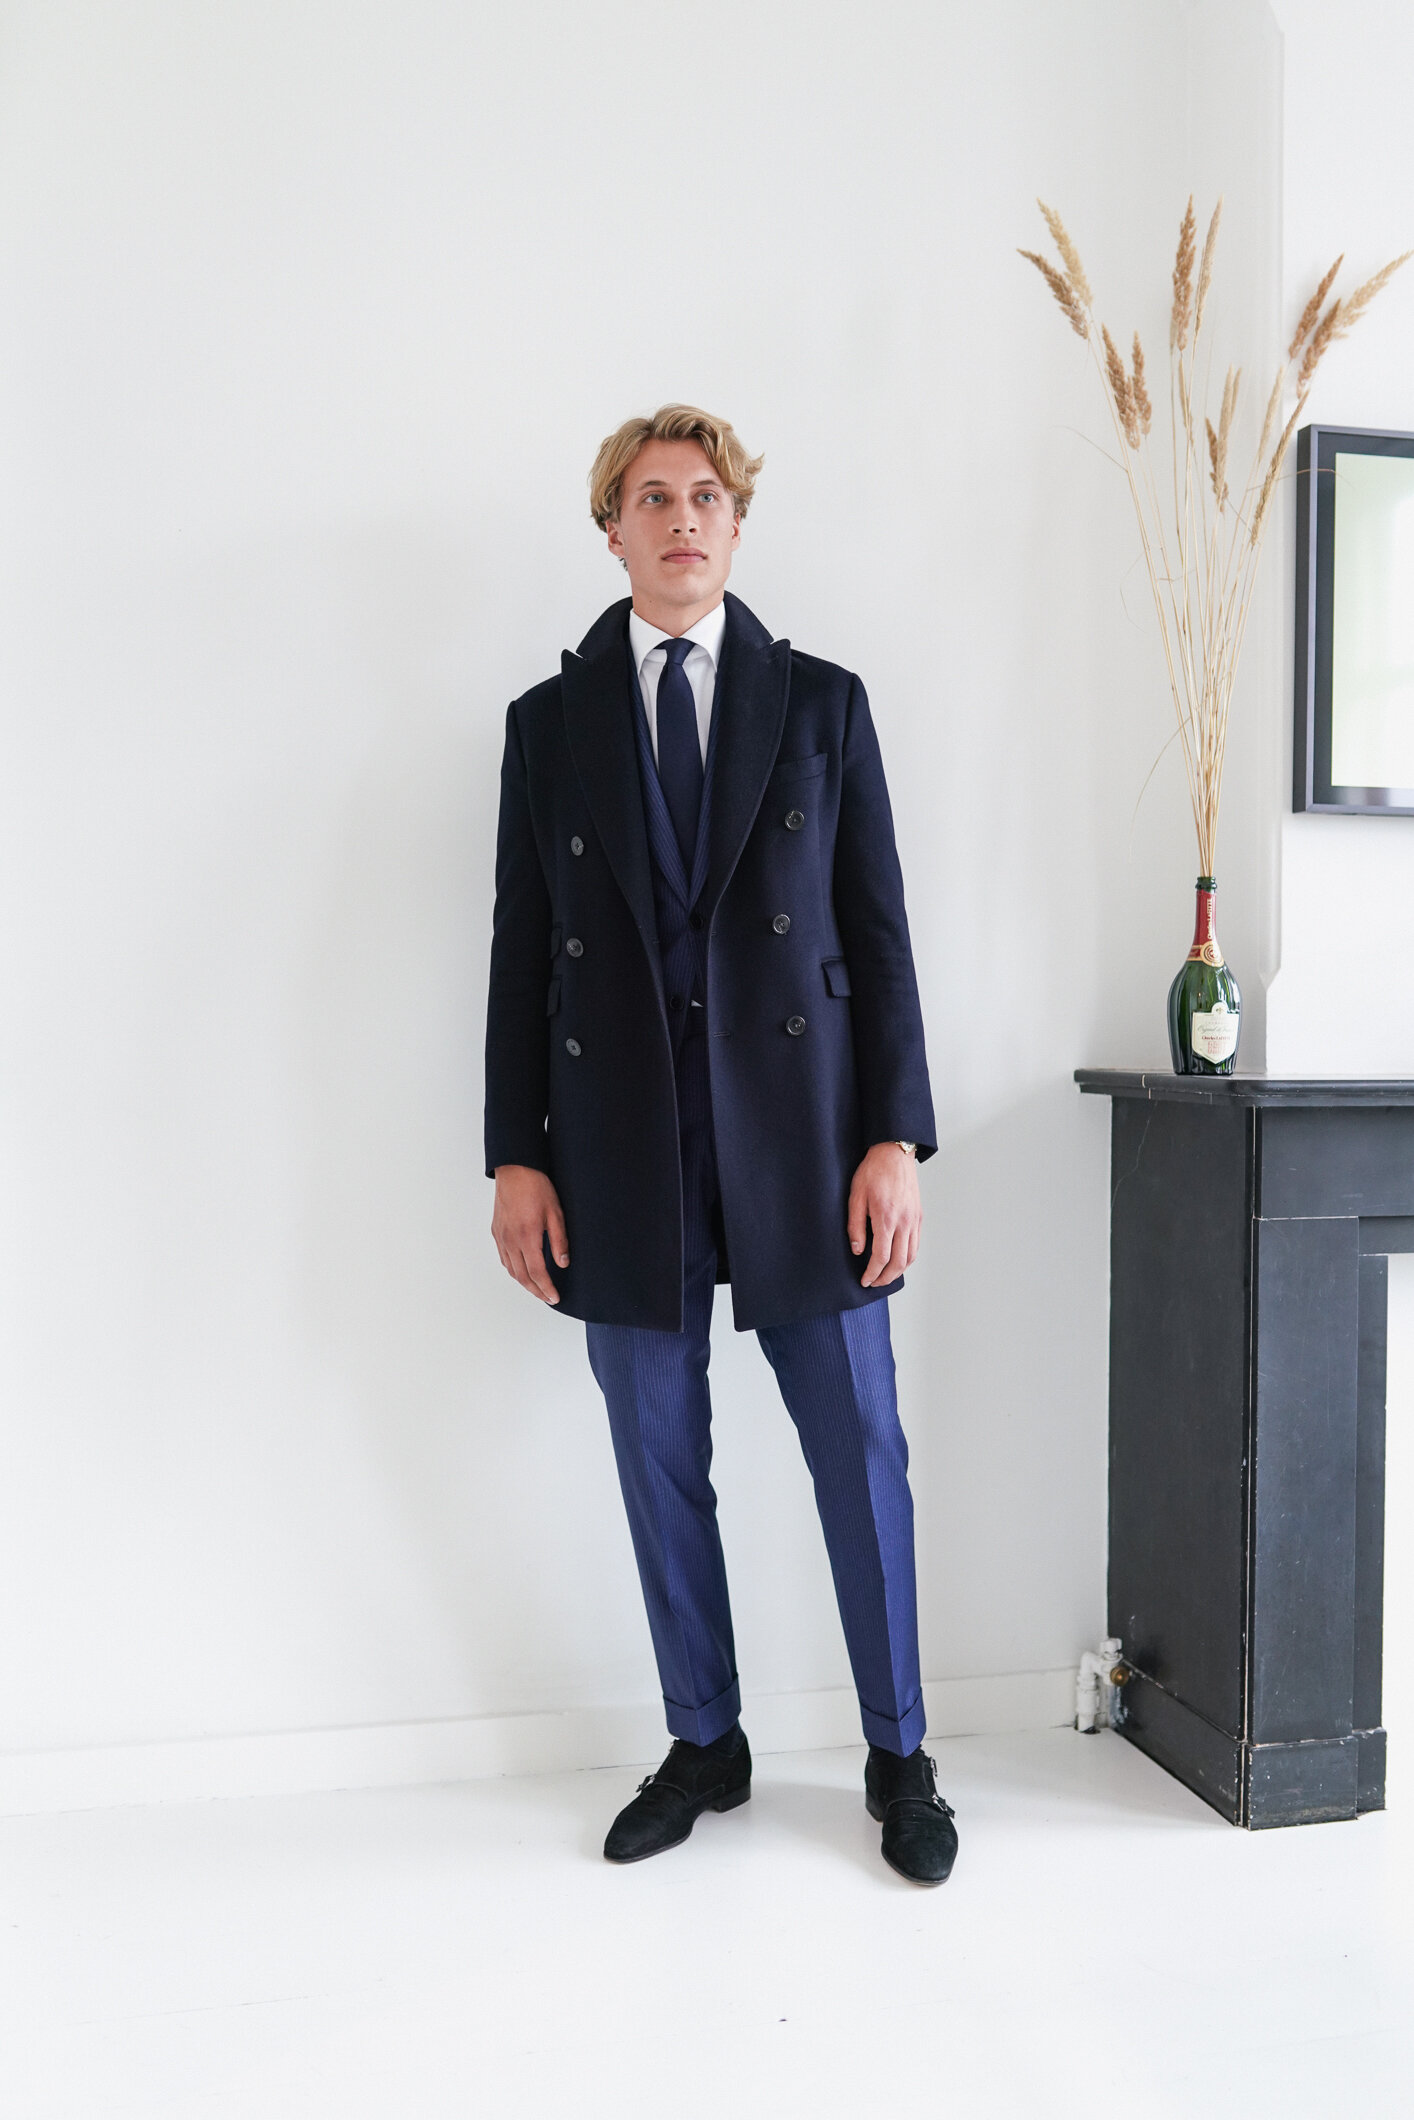 Overcoats - Crafted from The Gift of Kings® wool layer fabric, Loro Piana's exclusive selection of the finest wool in the world. Treated with Rain System® for a water-repellent finish. Styled with a straight cut, perfect for city dressing with both casual and formal outfits.Prices start at €399,-